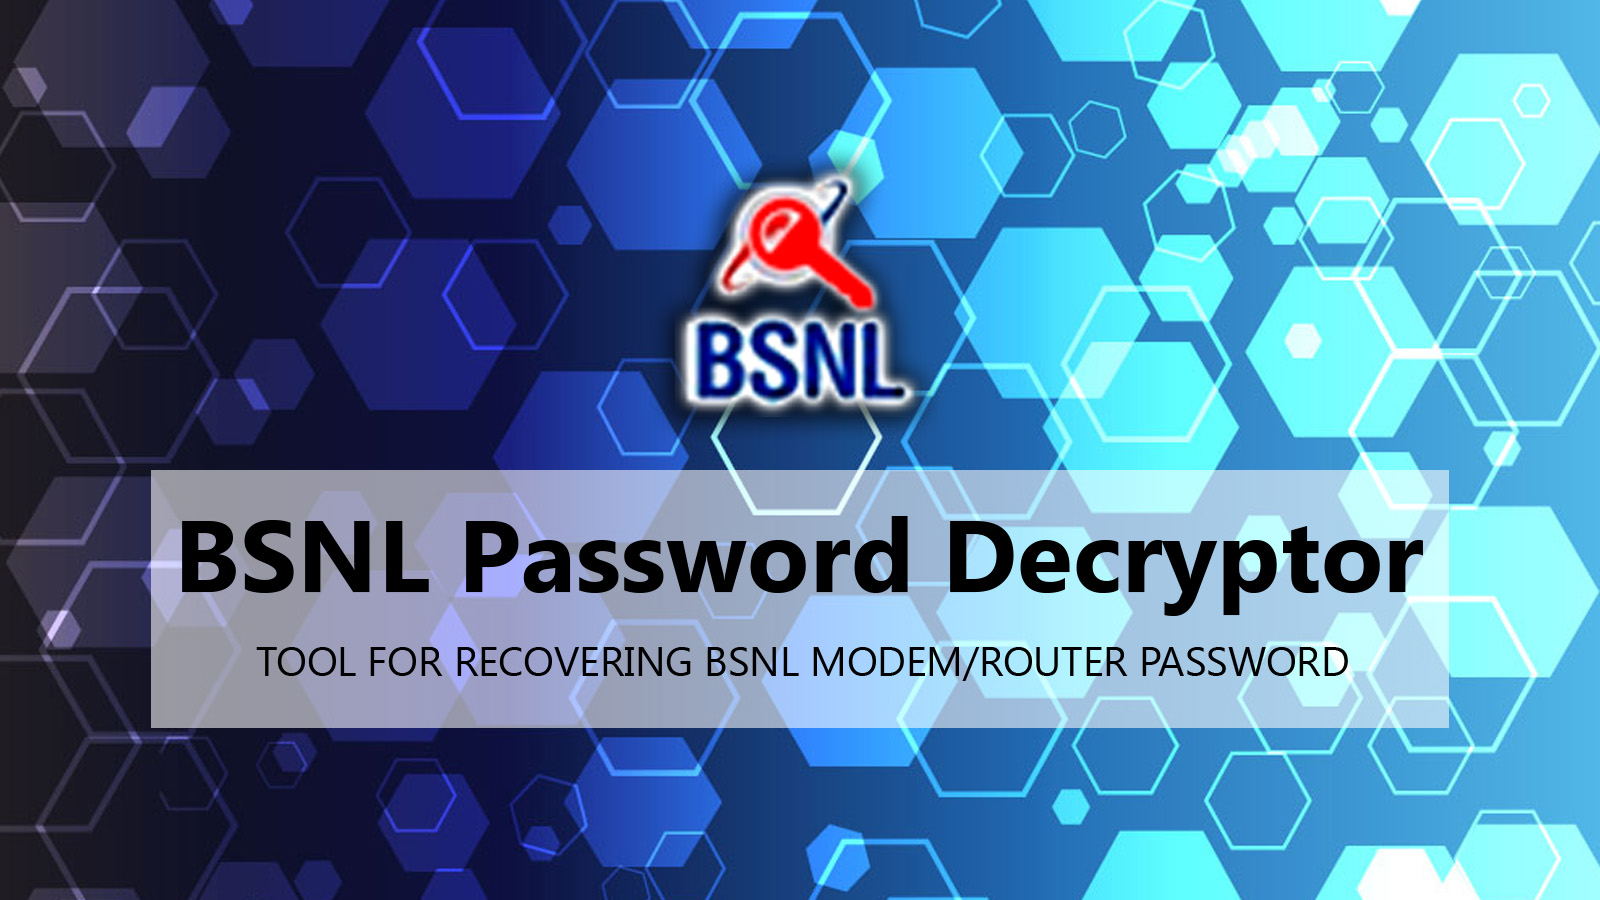 BSNL Password Decryptor